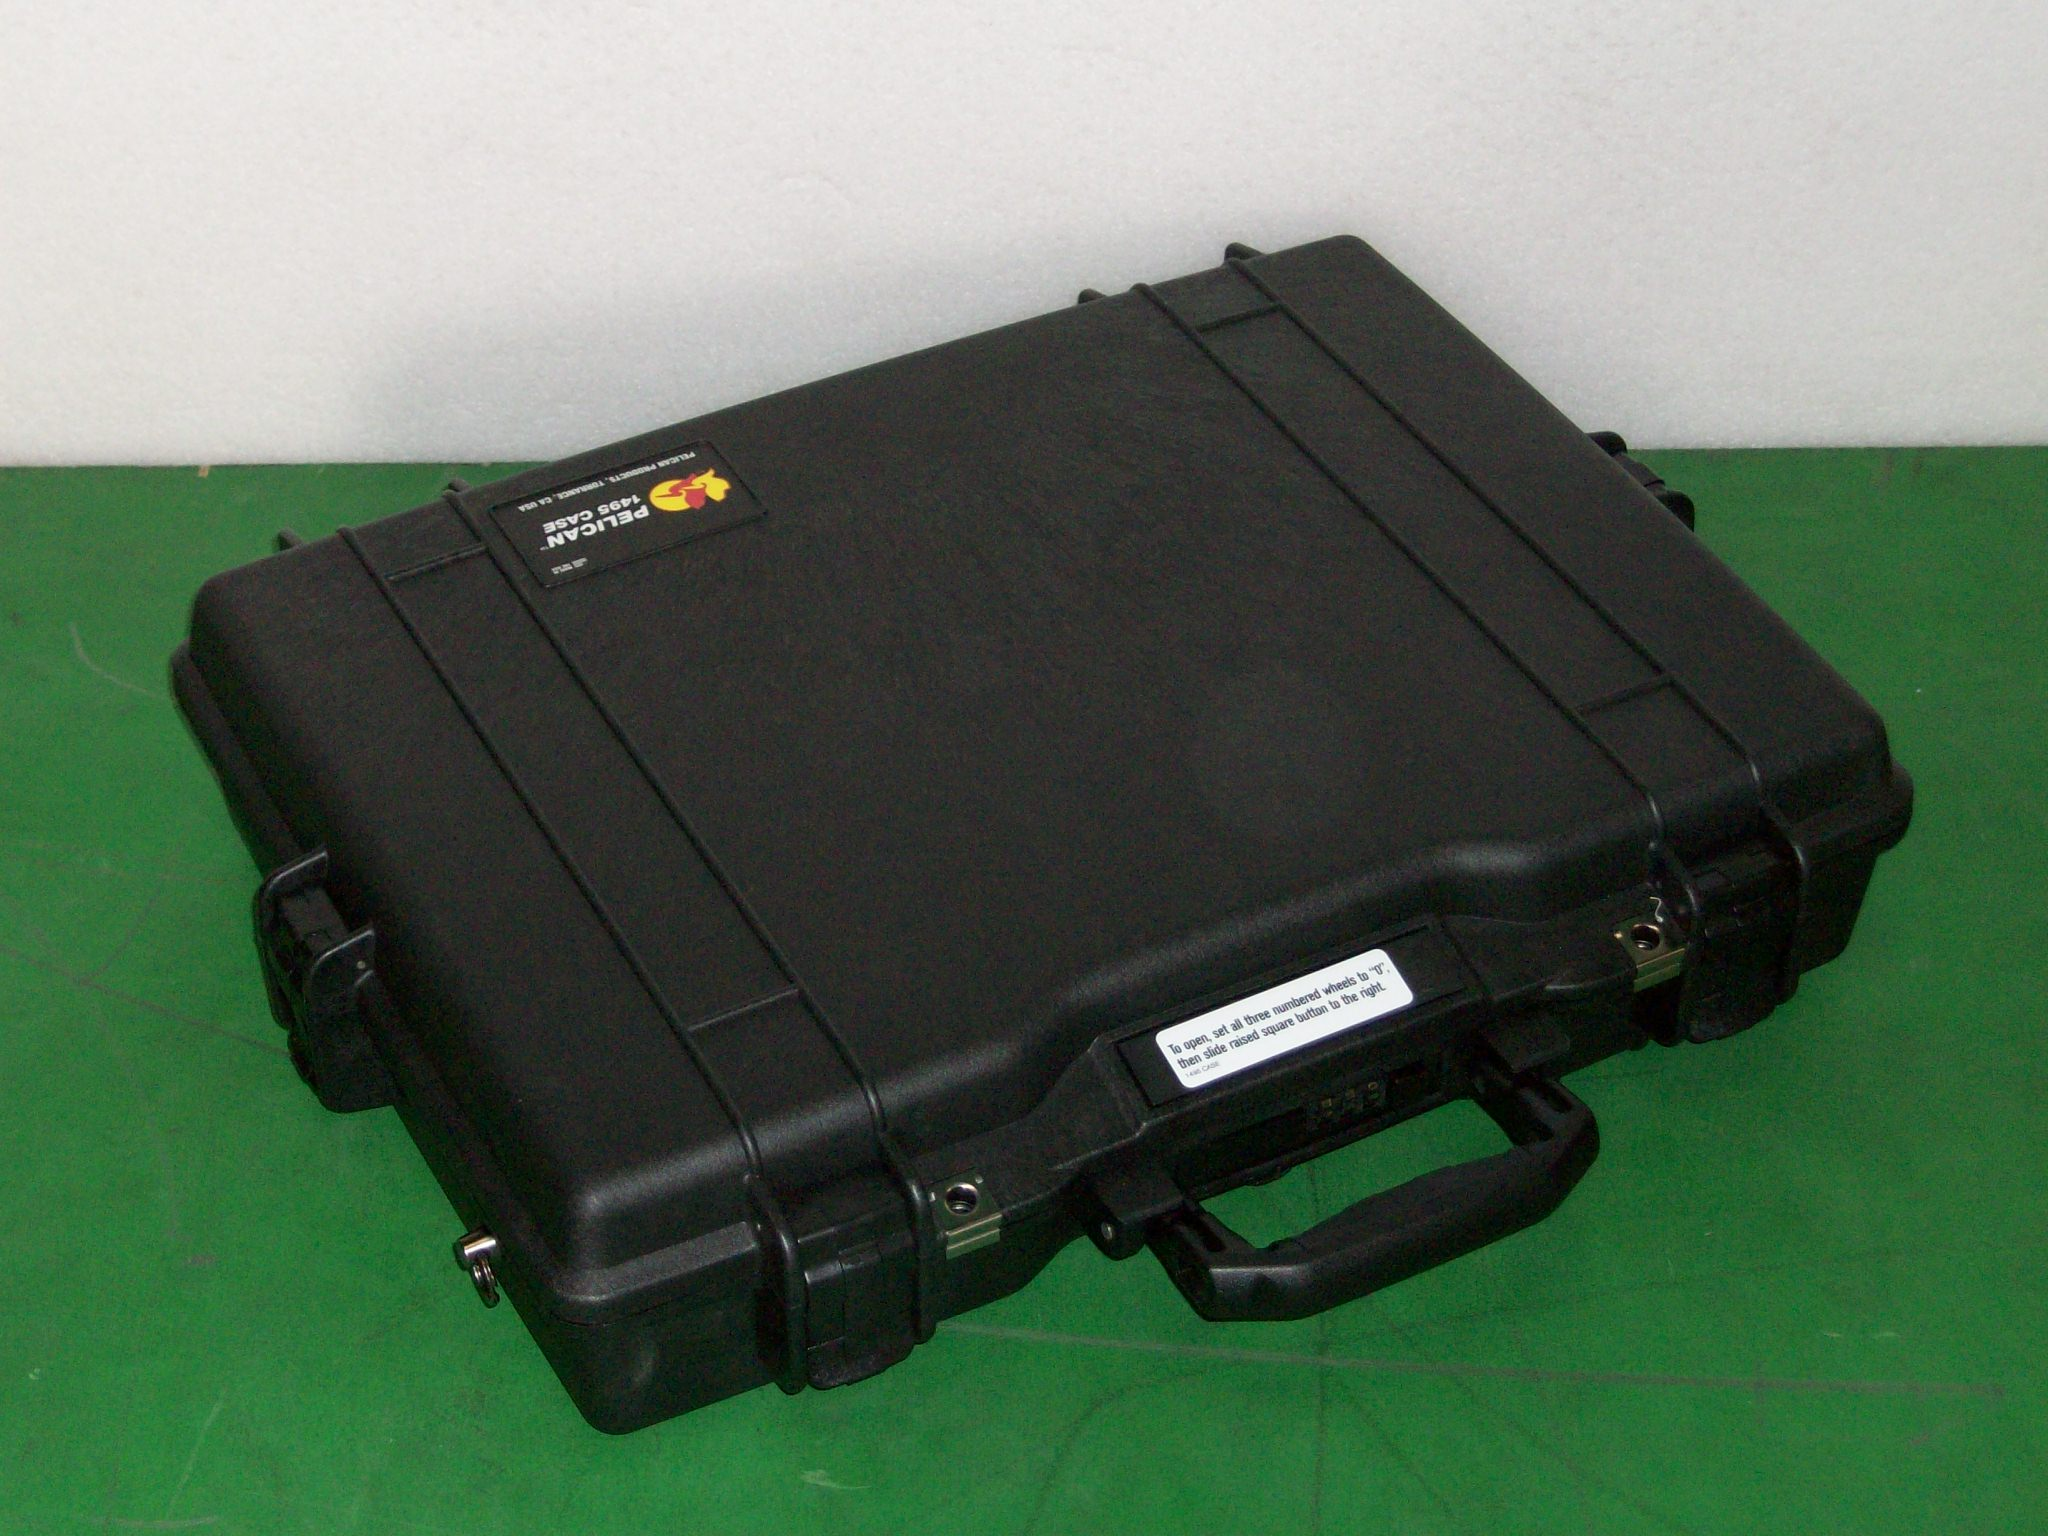 Print # 6410 - Pelican 1495 Case w/ Custom Foam Insert for (1) Shure BLX288/PG58 Wireless Vocal Combo with (2) PG58 Handheld Microphones By Nelson Case Corp